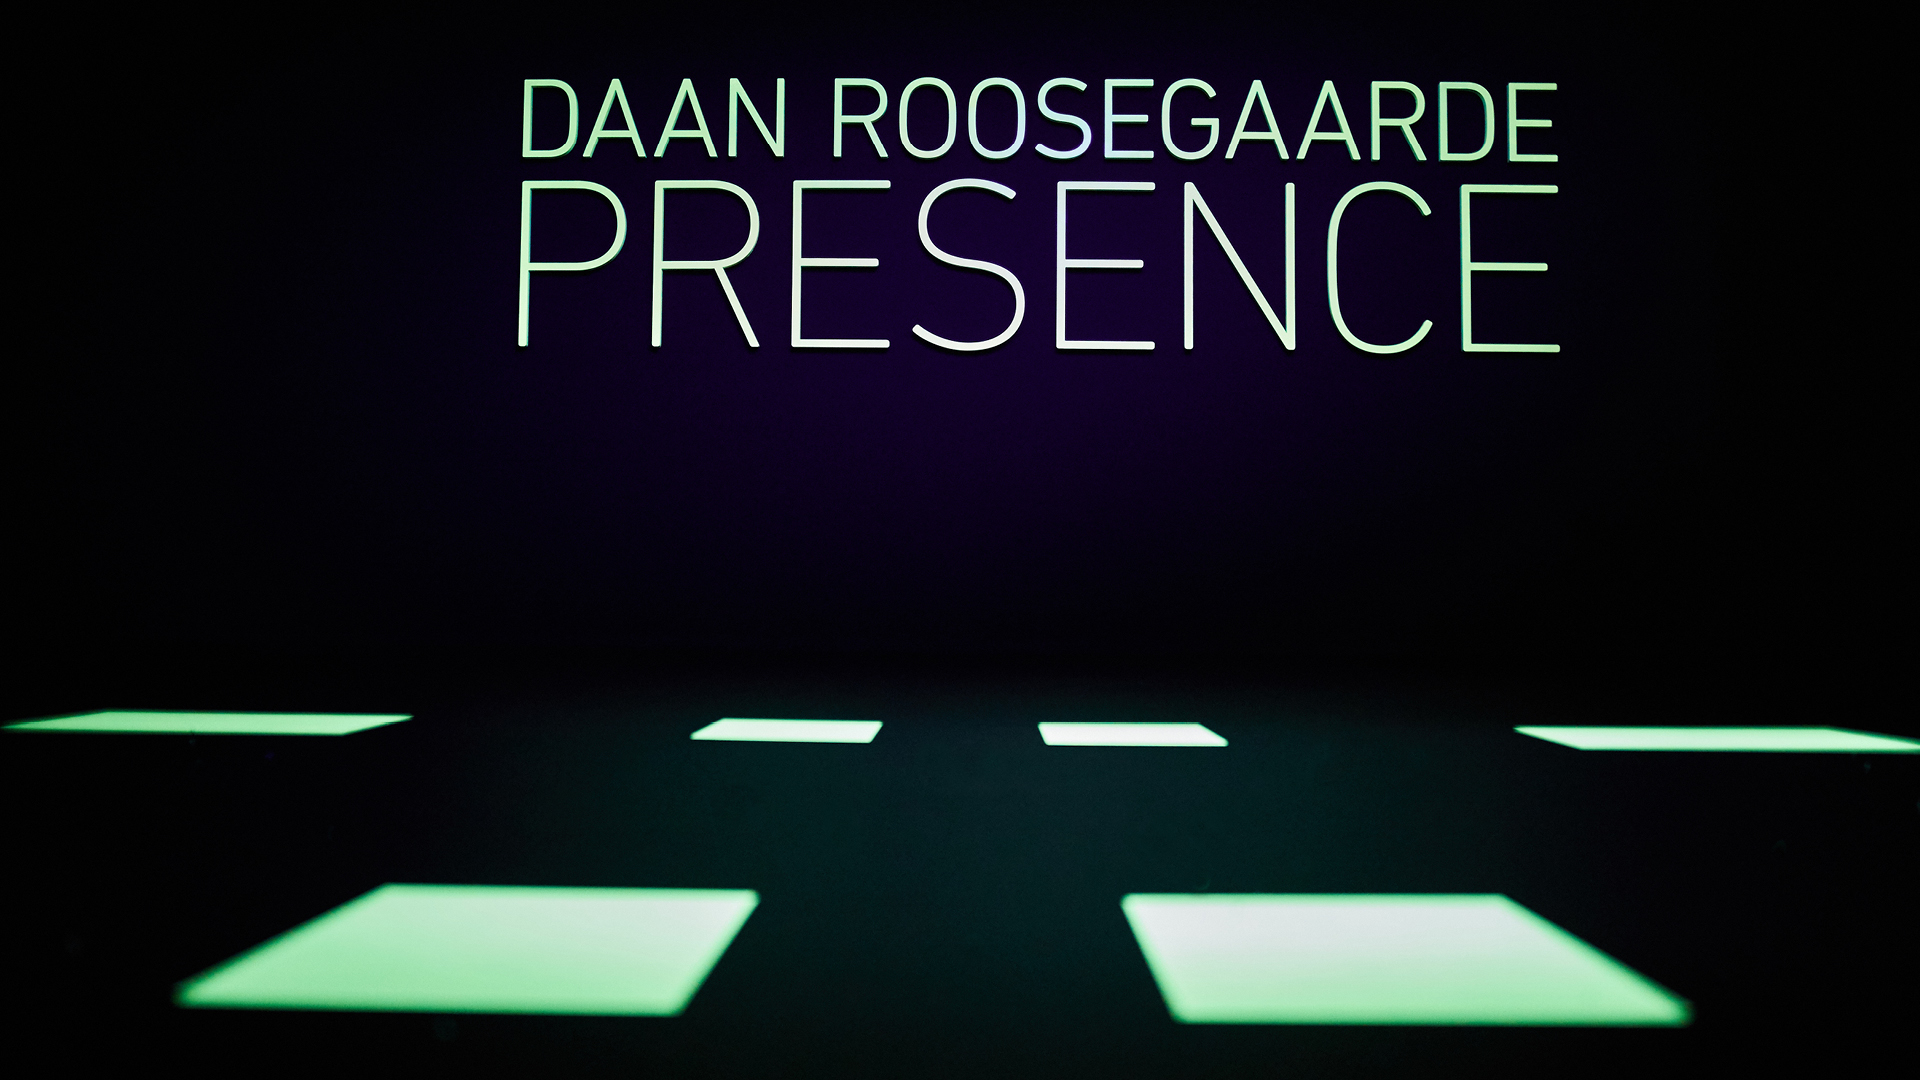 A dream landscape of light and interaction – Presence by Daan Roosegaarde| Presence | Daan Roosegaarde | Groninger Museum| STIRworld